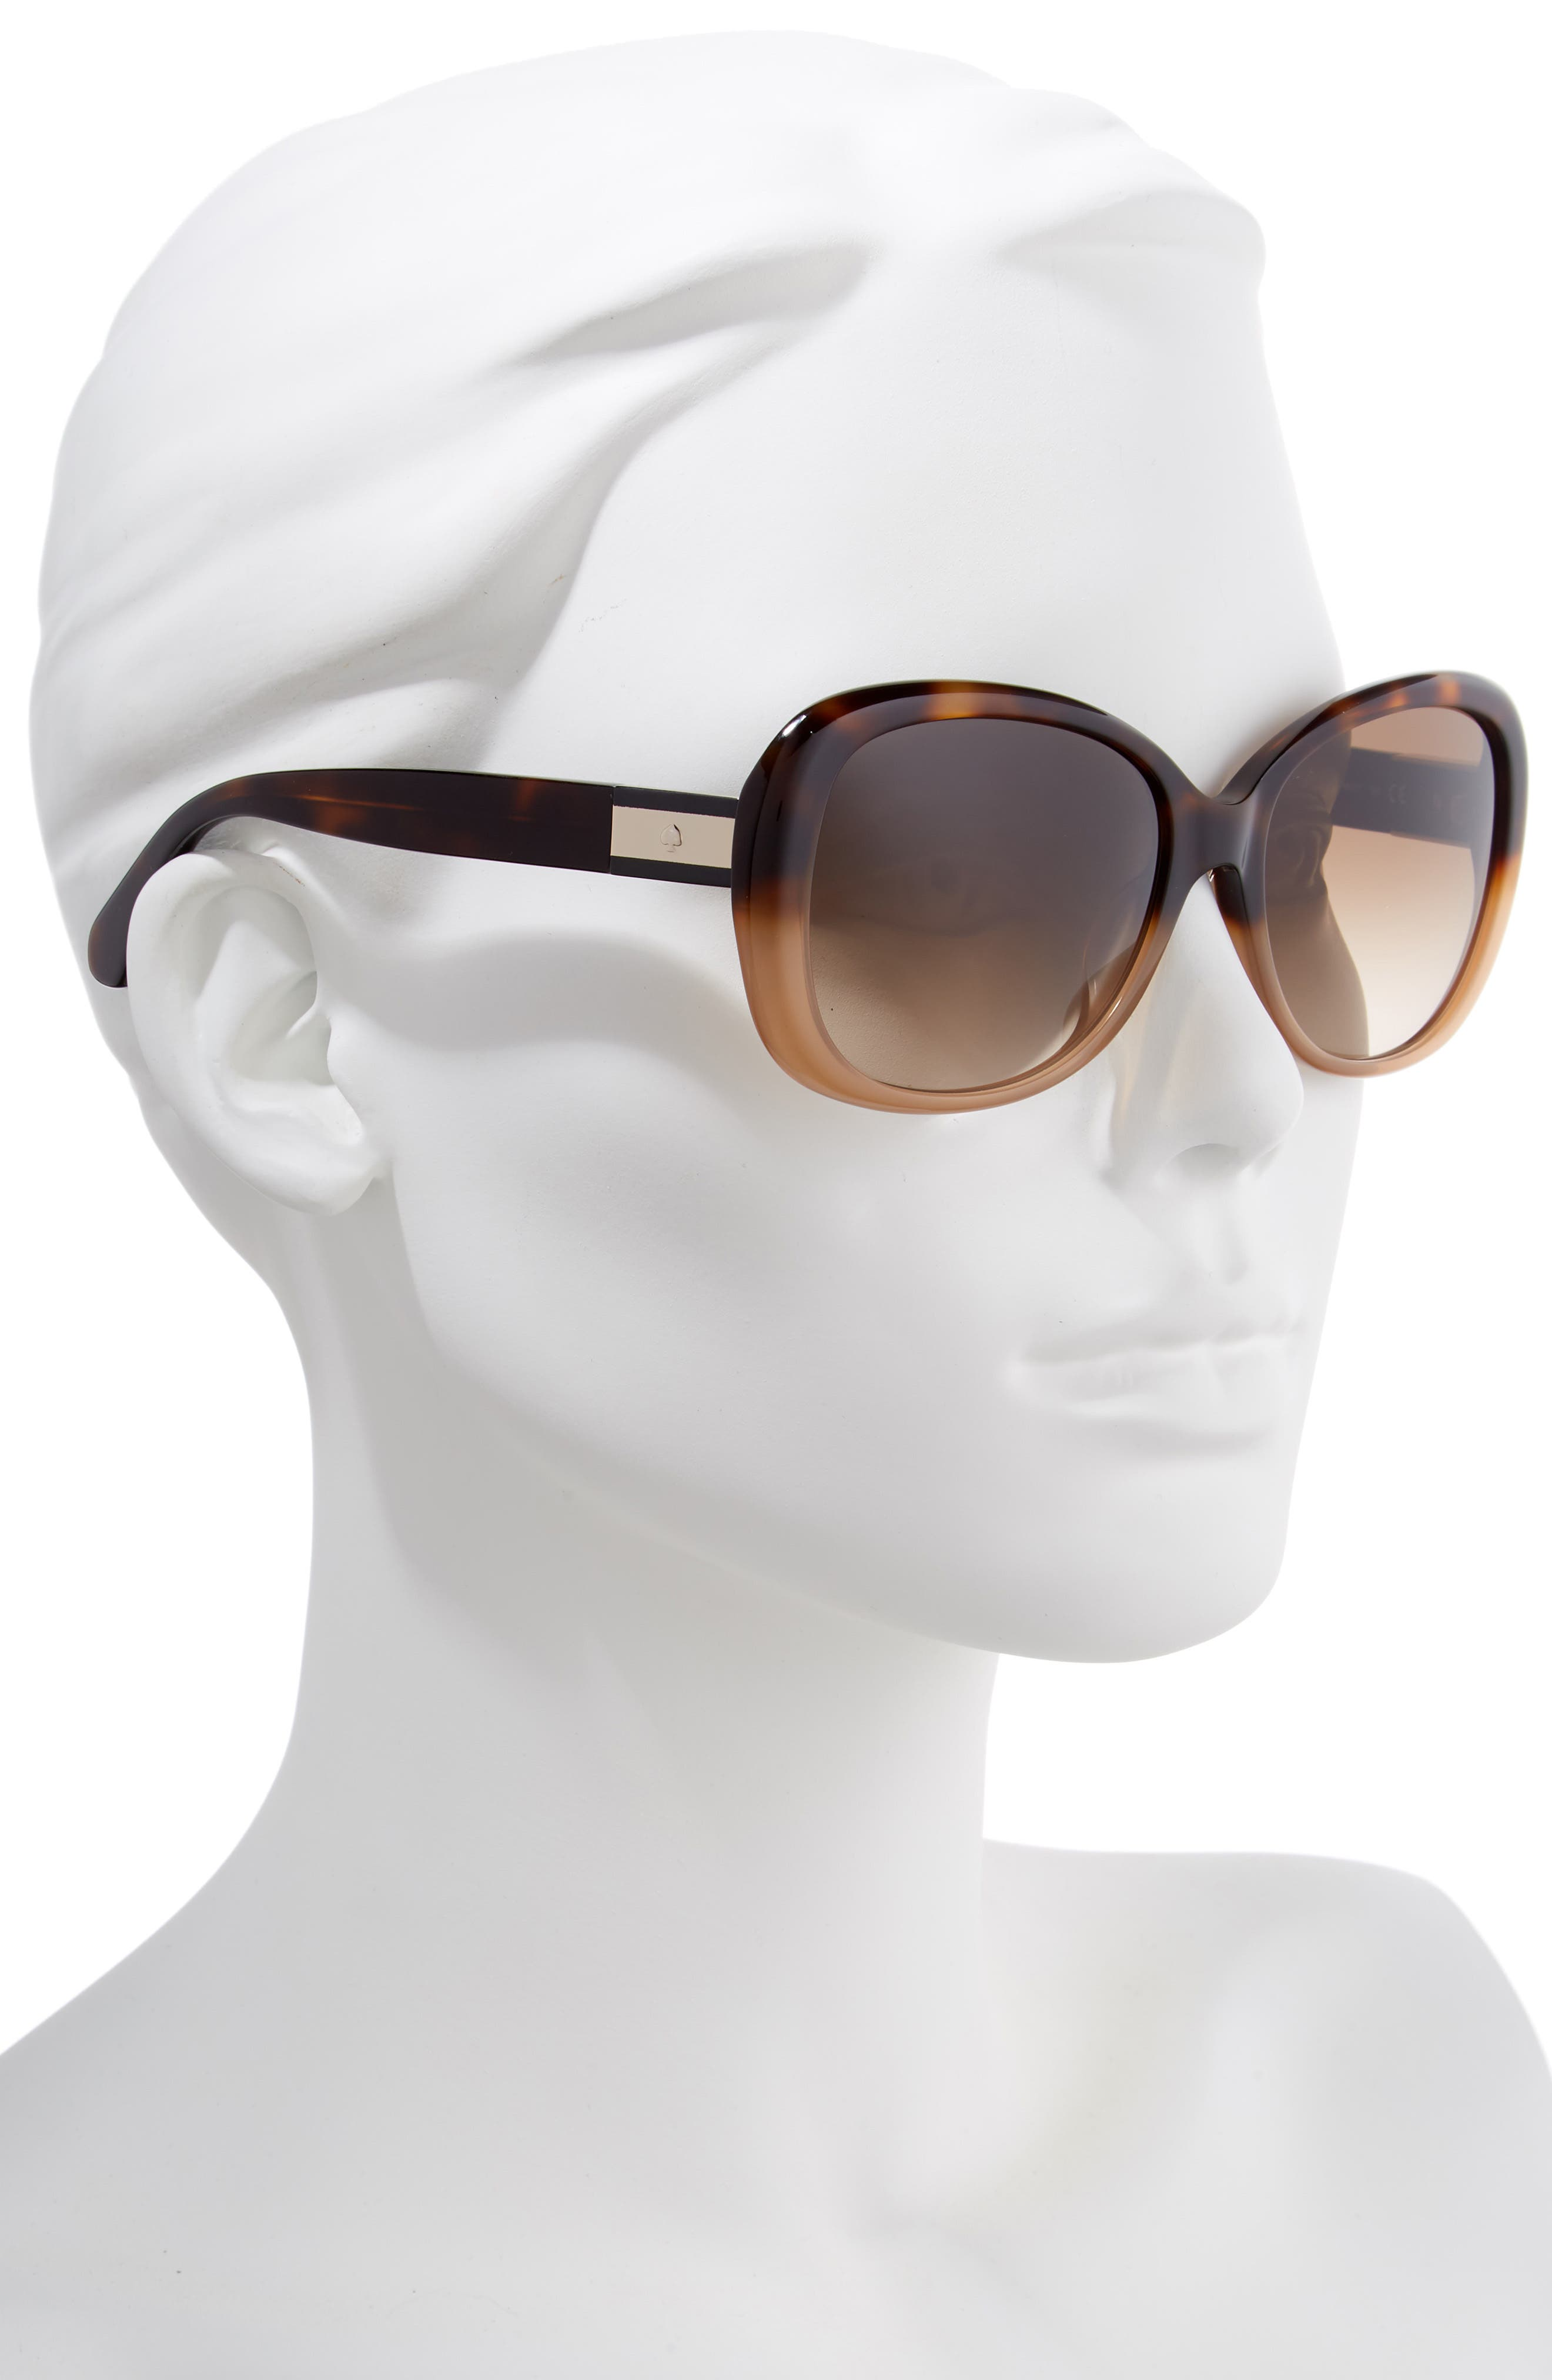 afdd1aed37a3f Women s Sunglasses Sale